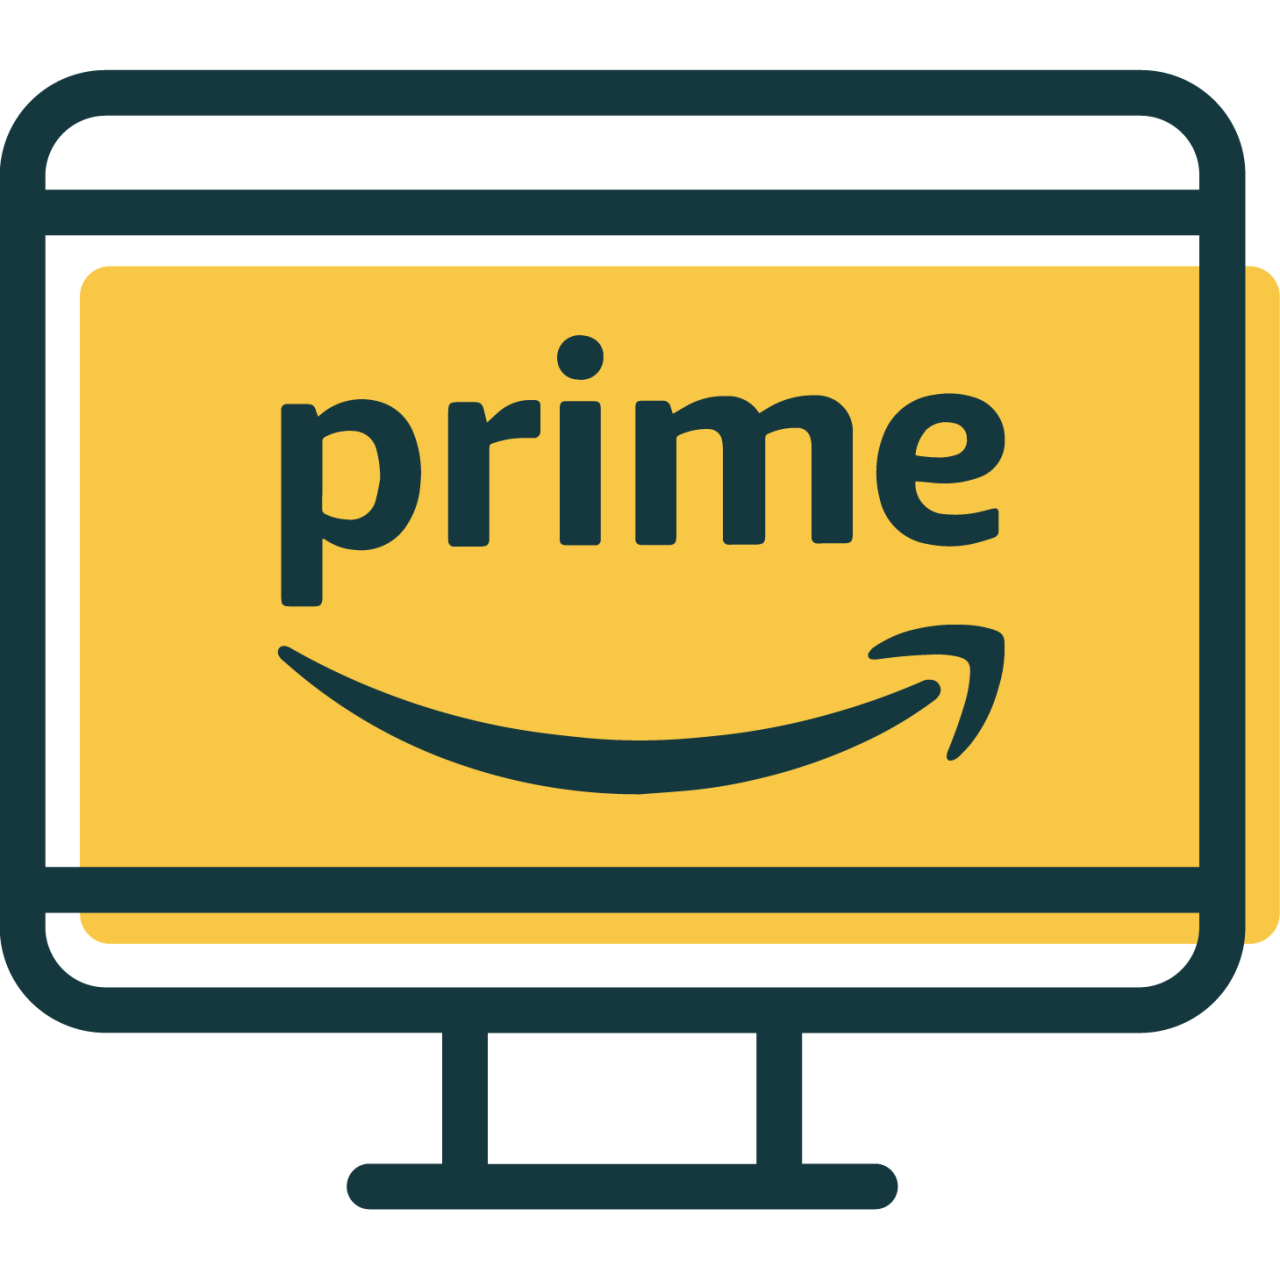 Products enabled with Prime delivery